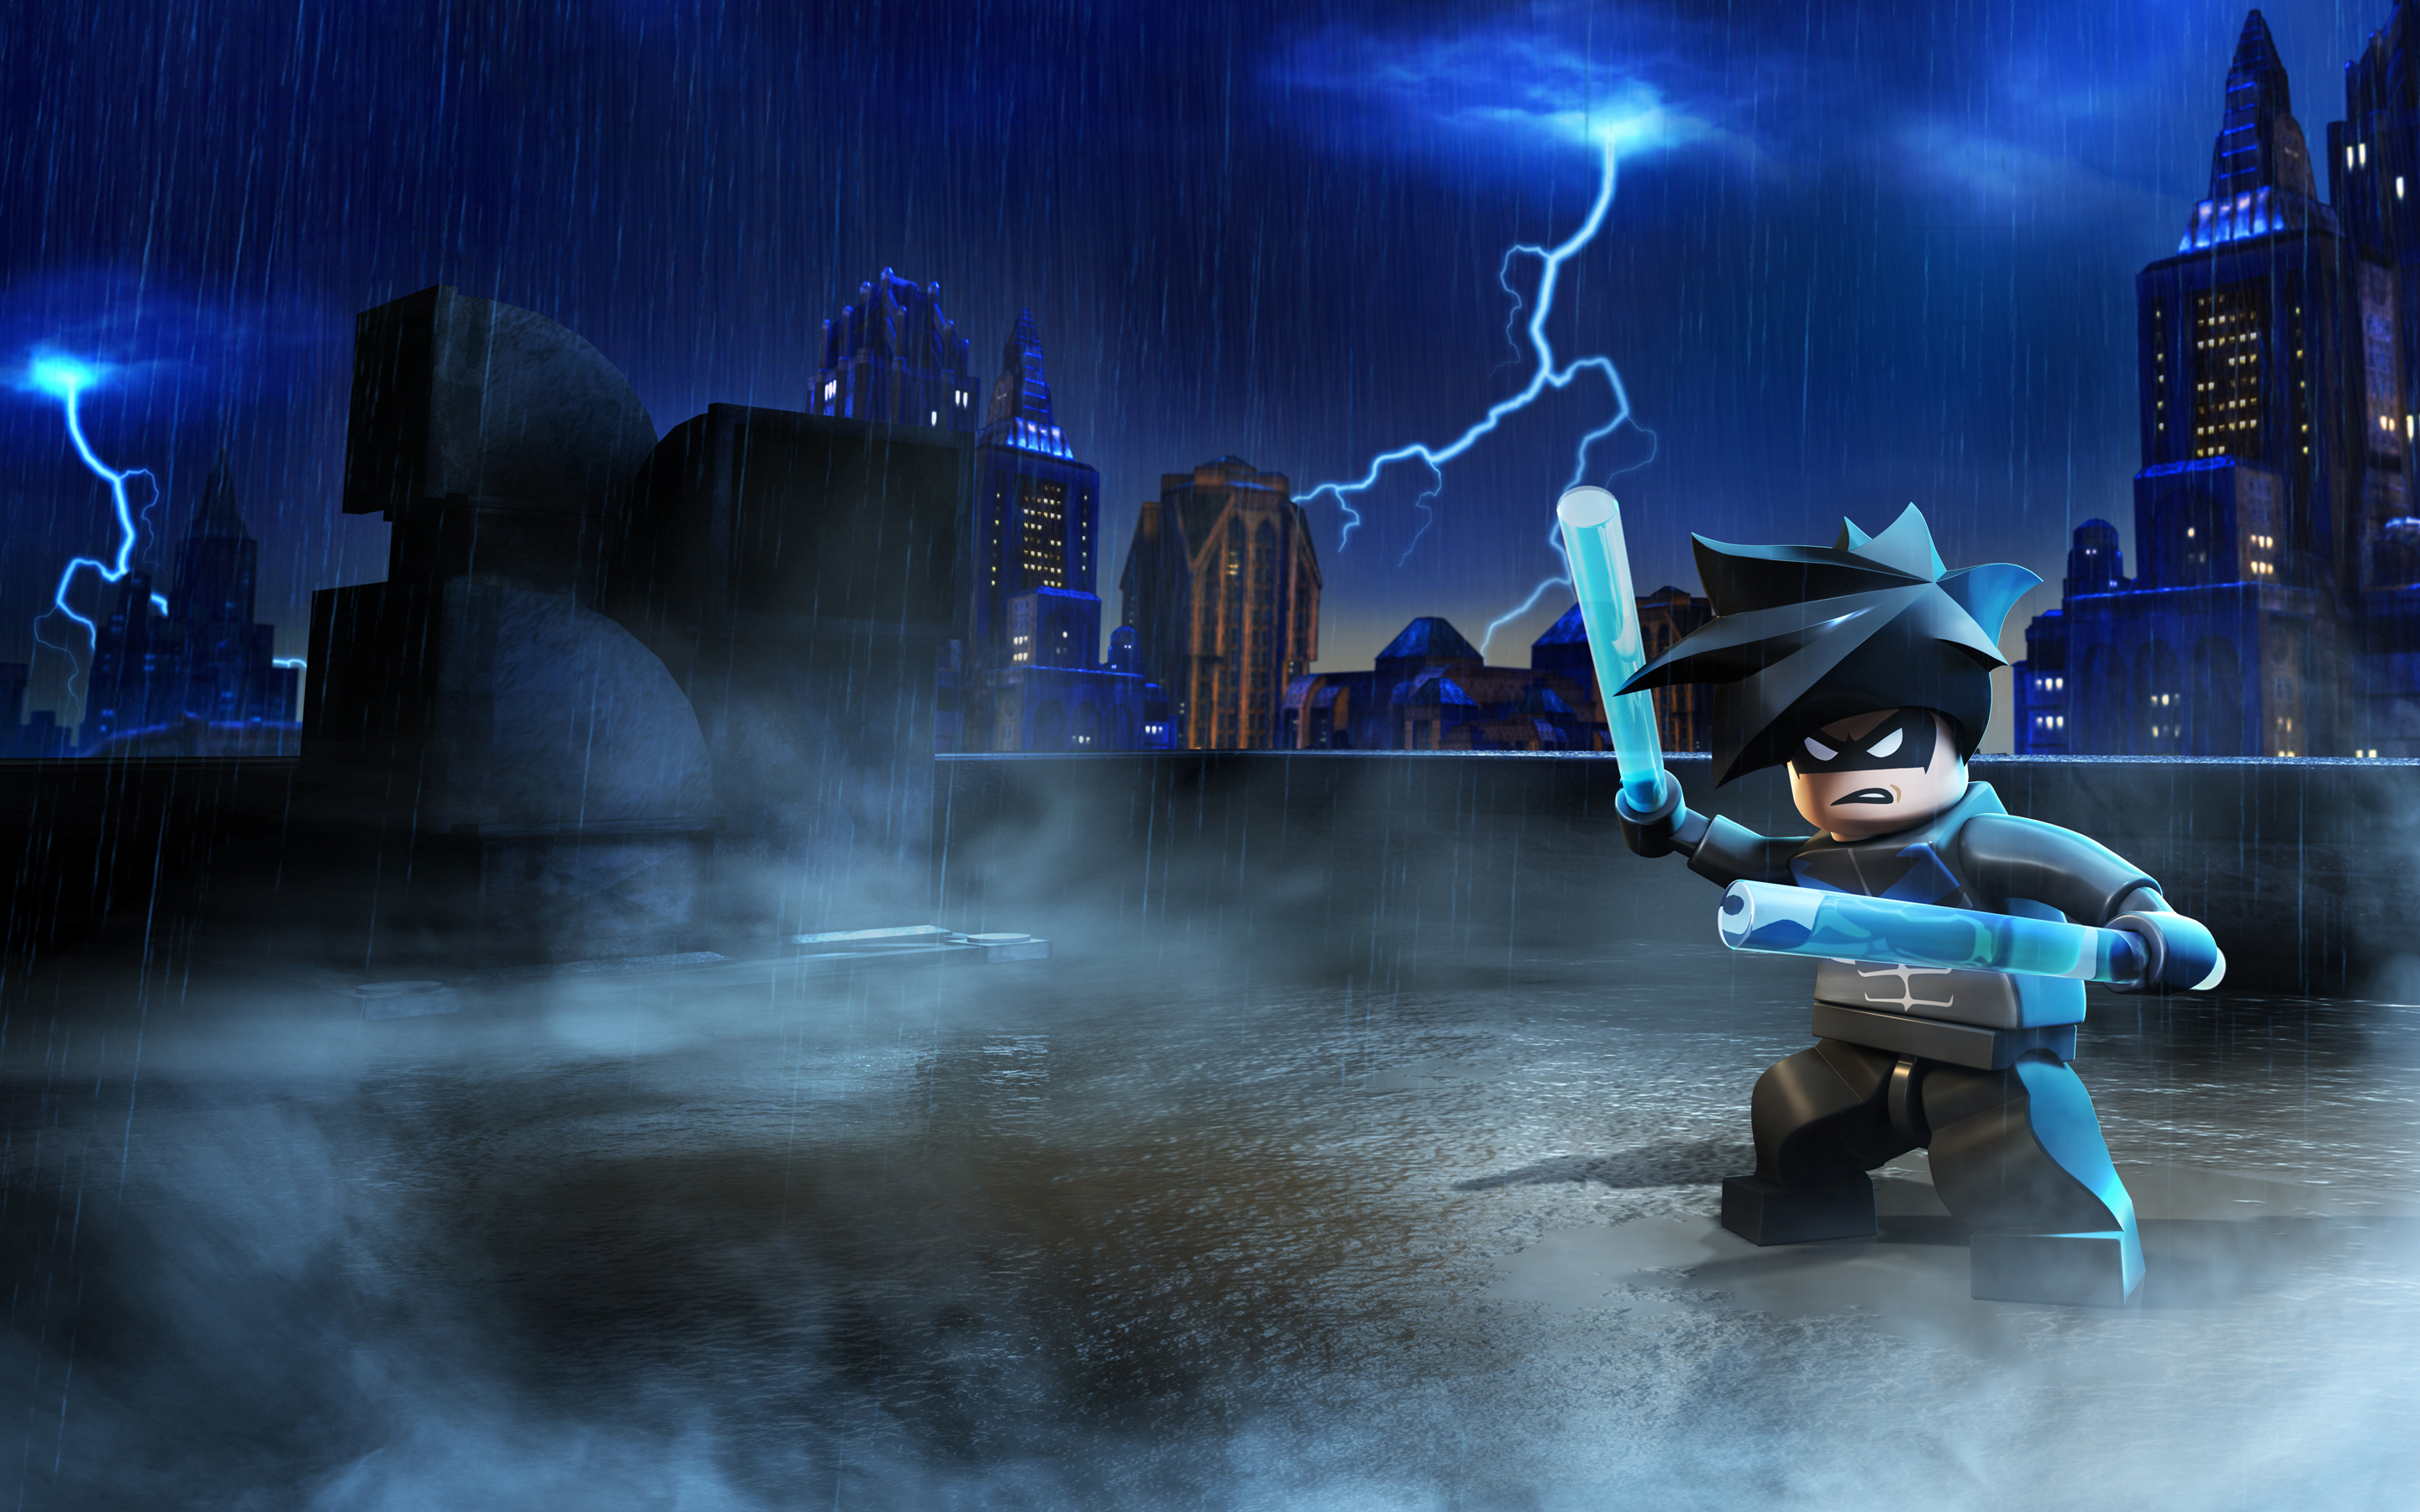 Free Download Lego Batman Wallpapers Hd Wallpapers 2880x1800 For Images, Photos, Reviews